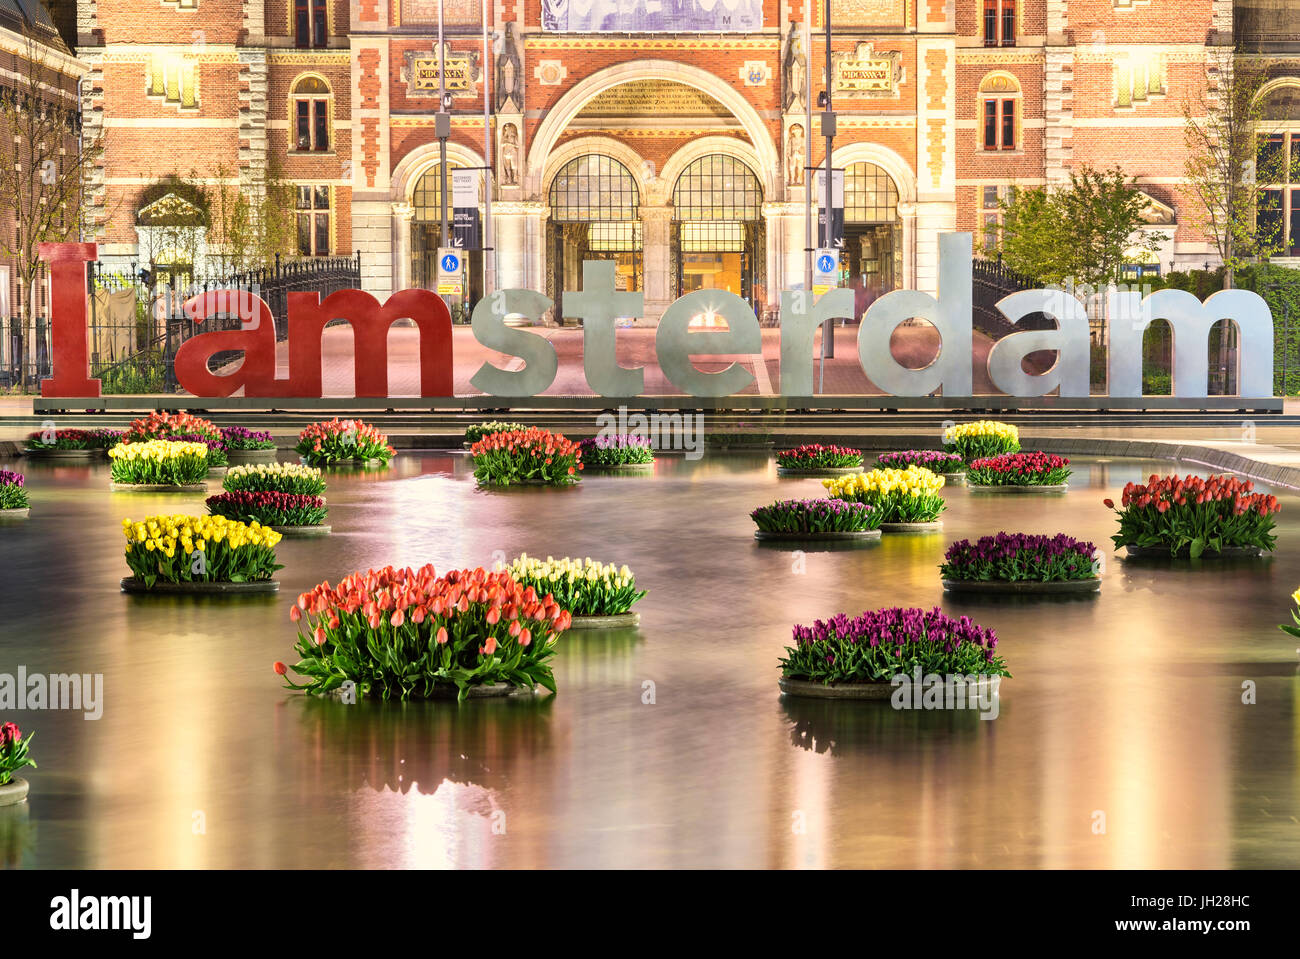 The National Rijksmuseum framed by vases of flowers floating in water, Amsterdam, Holland, The Netherlands, Europe - Stock Image